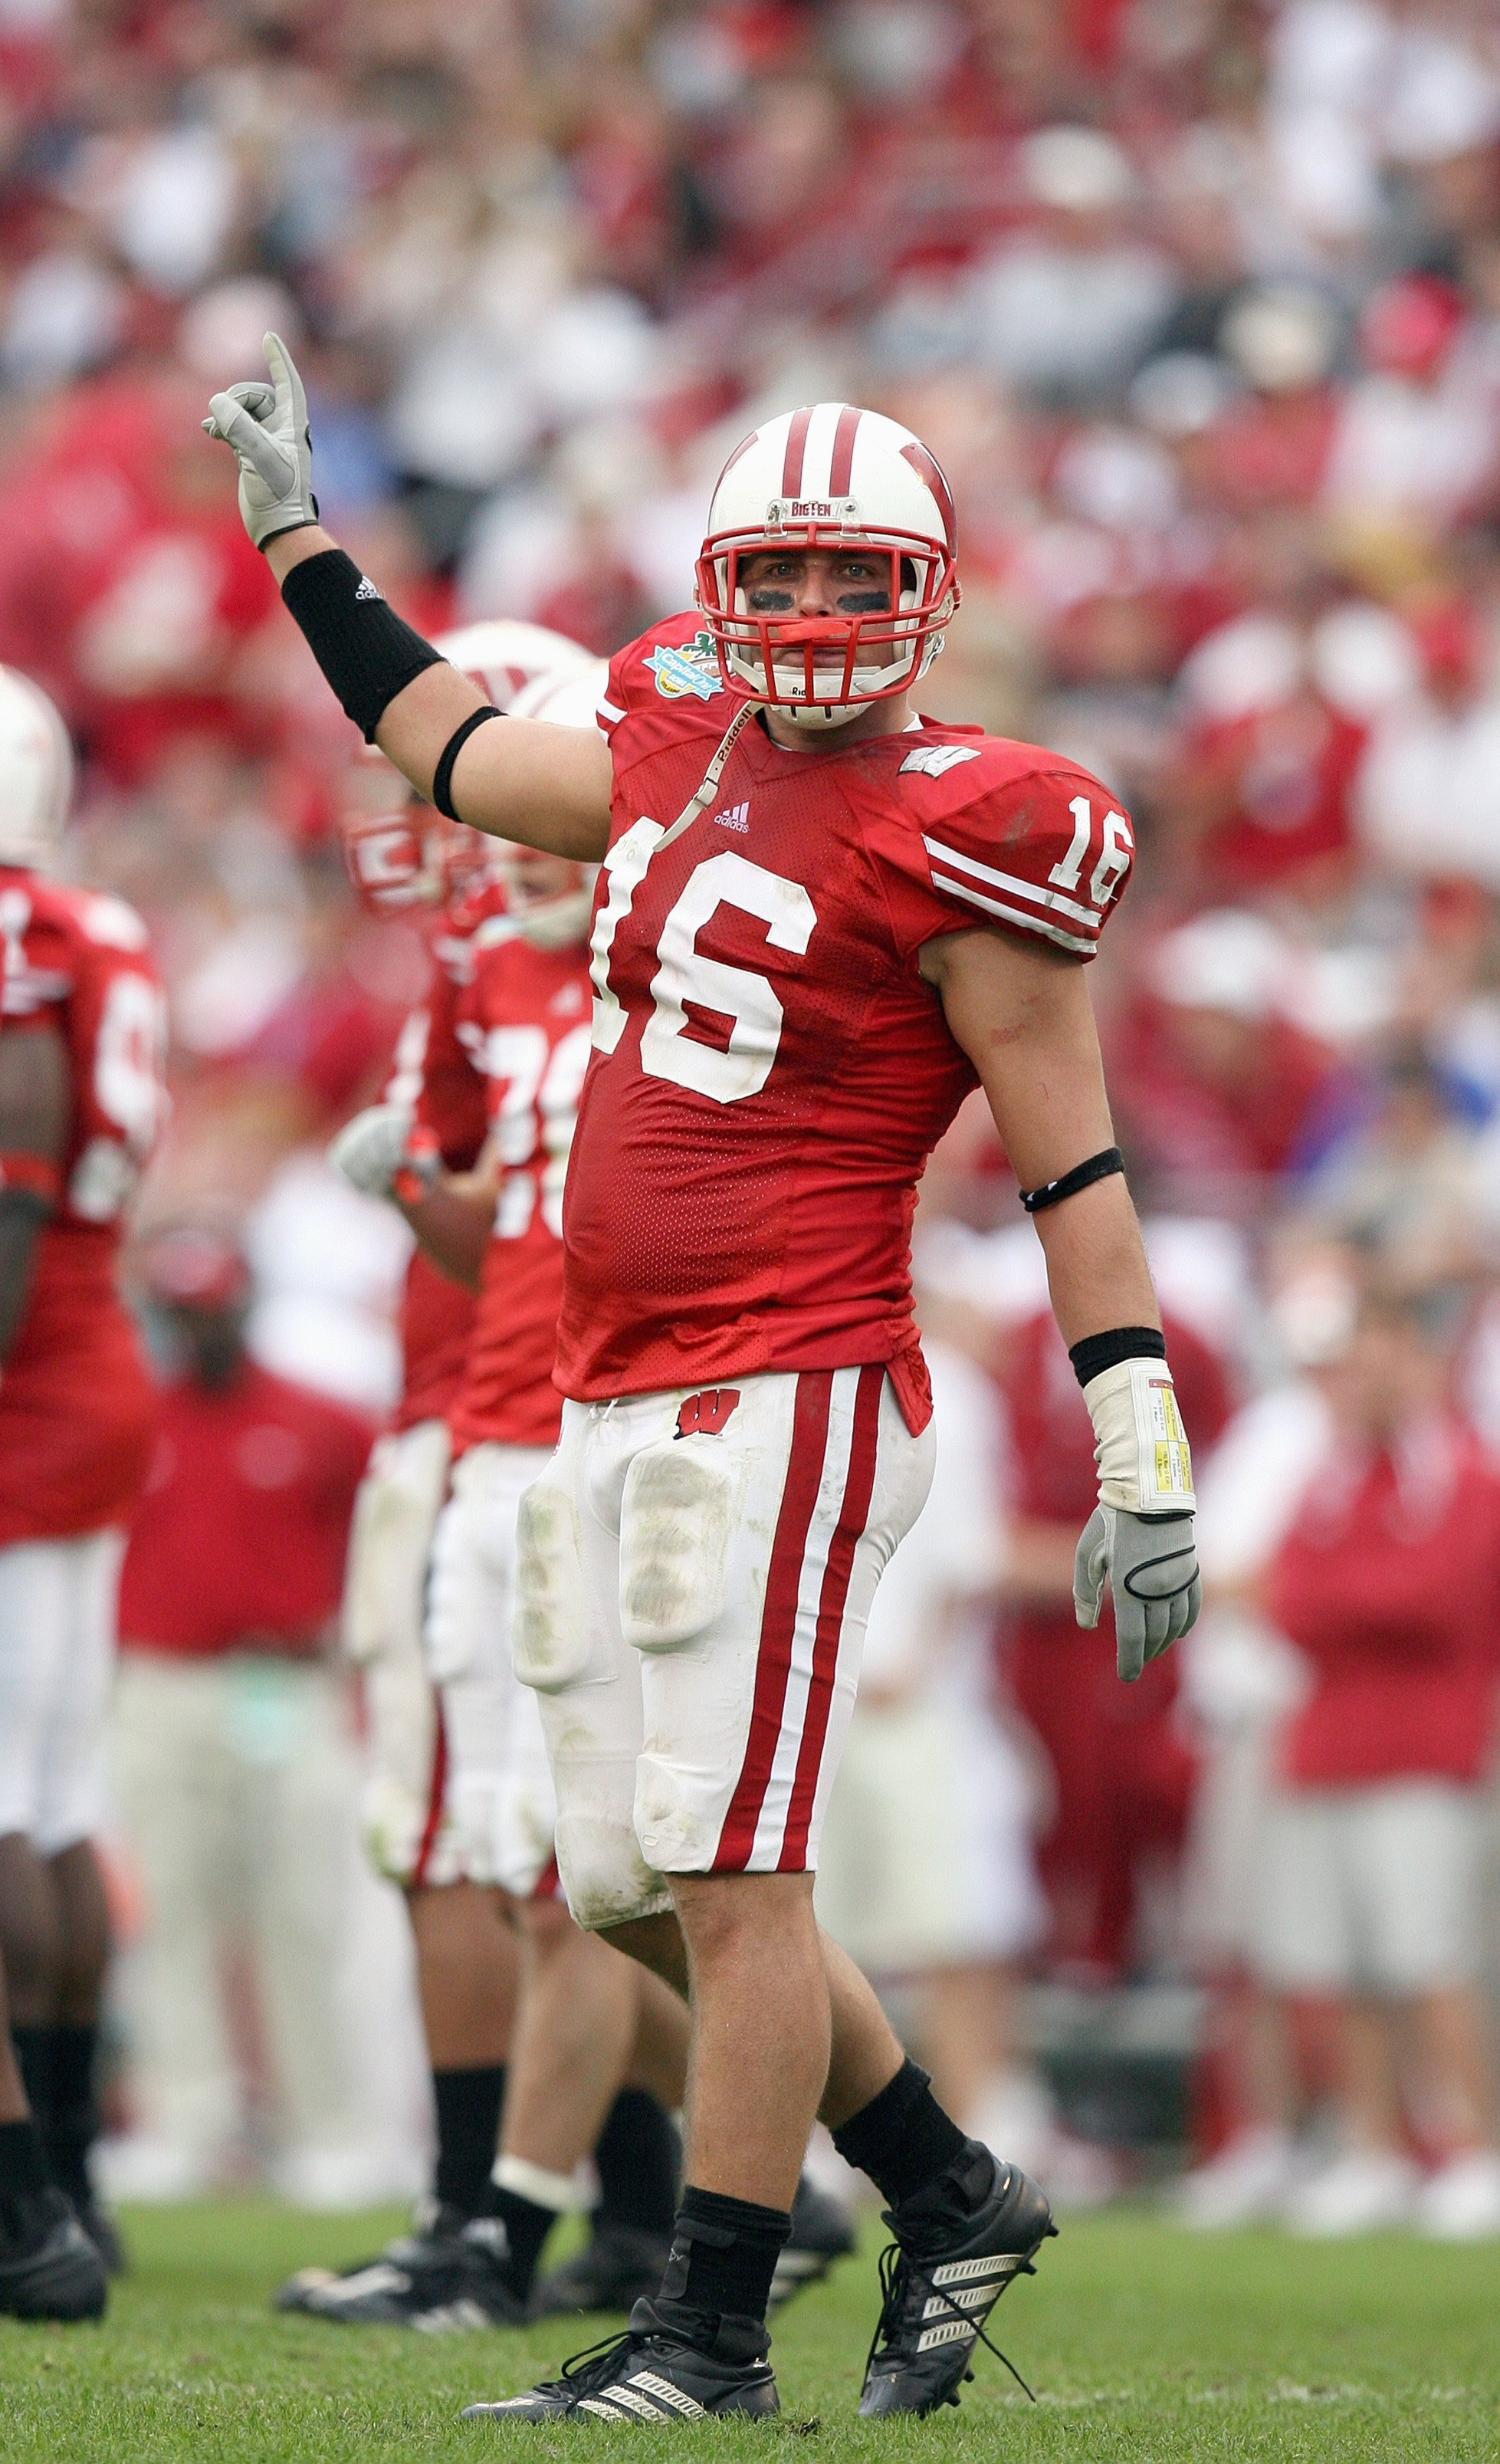 Walk On U Wisconsin Badgers Top Ons Of The Past 20 Years